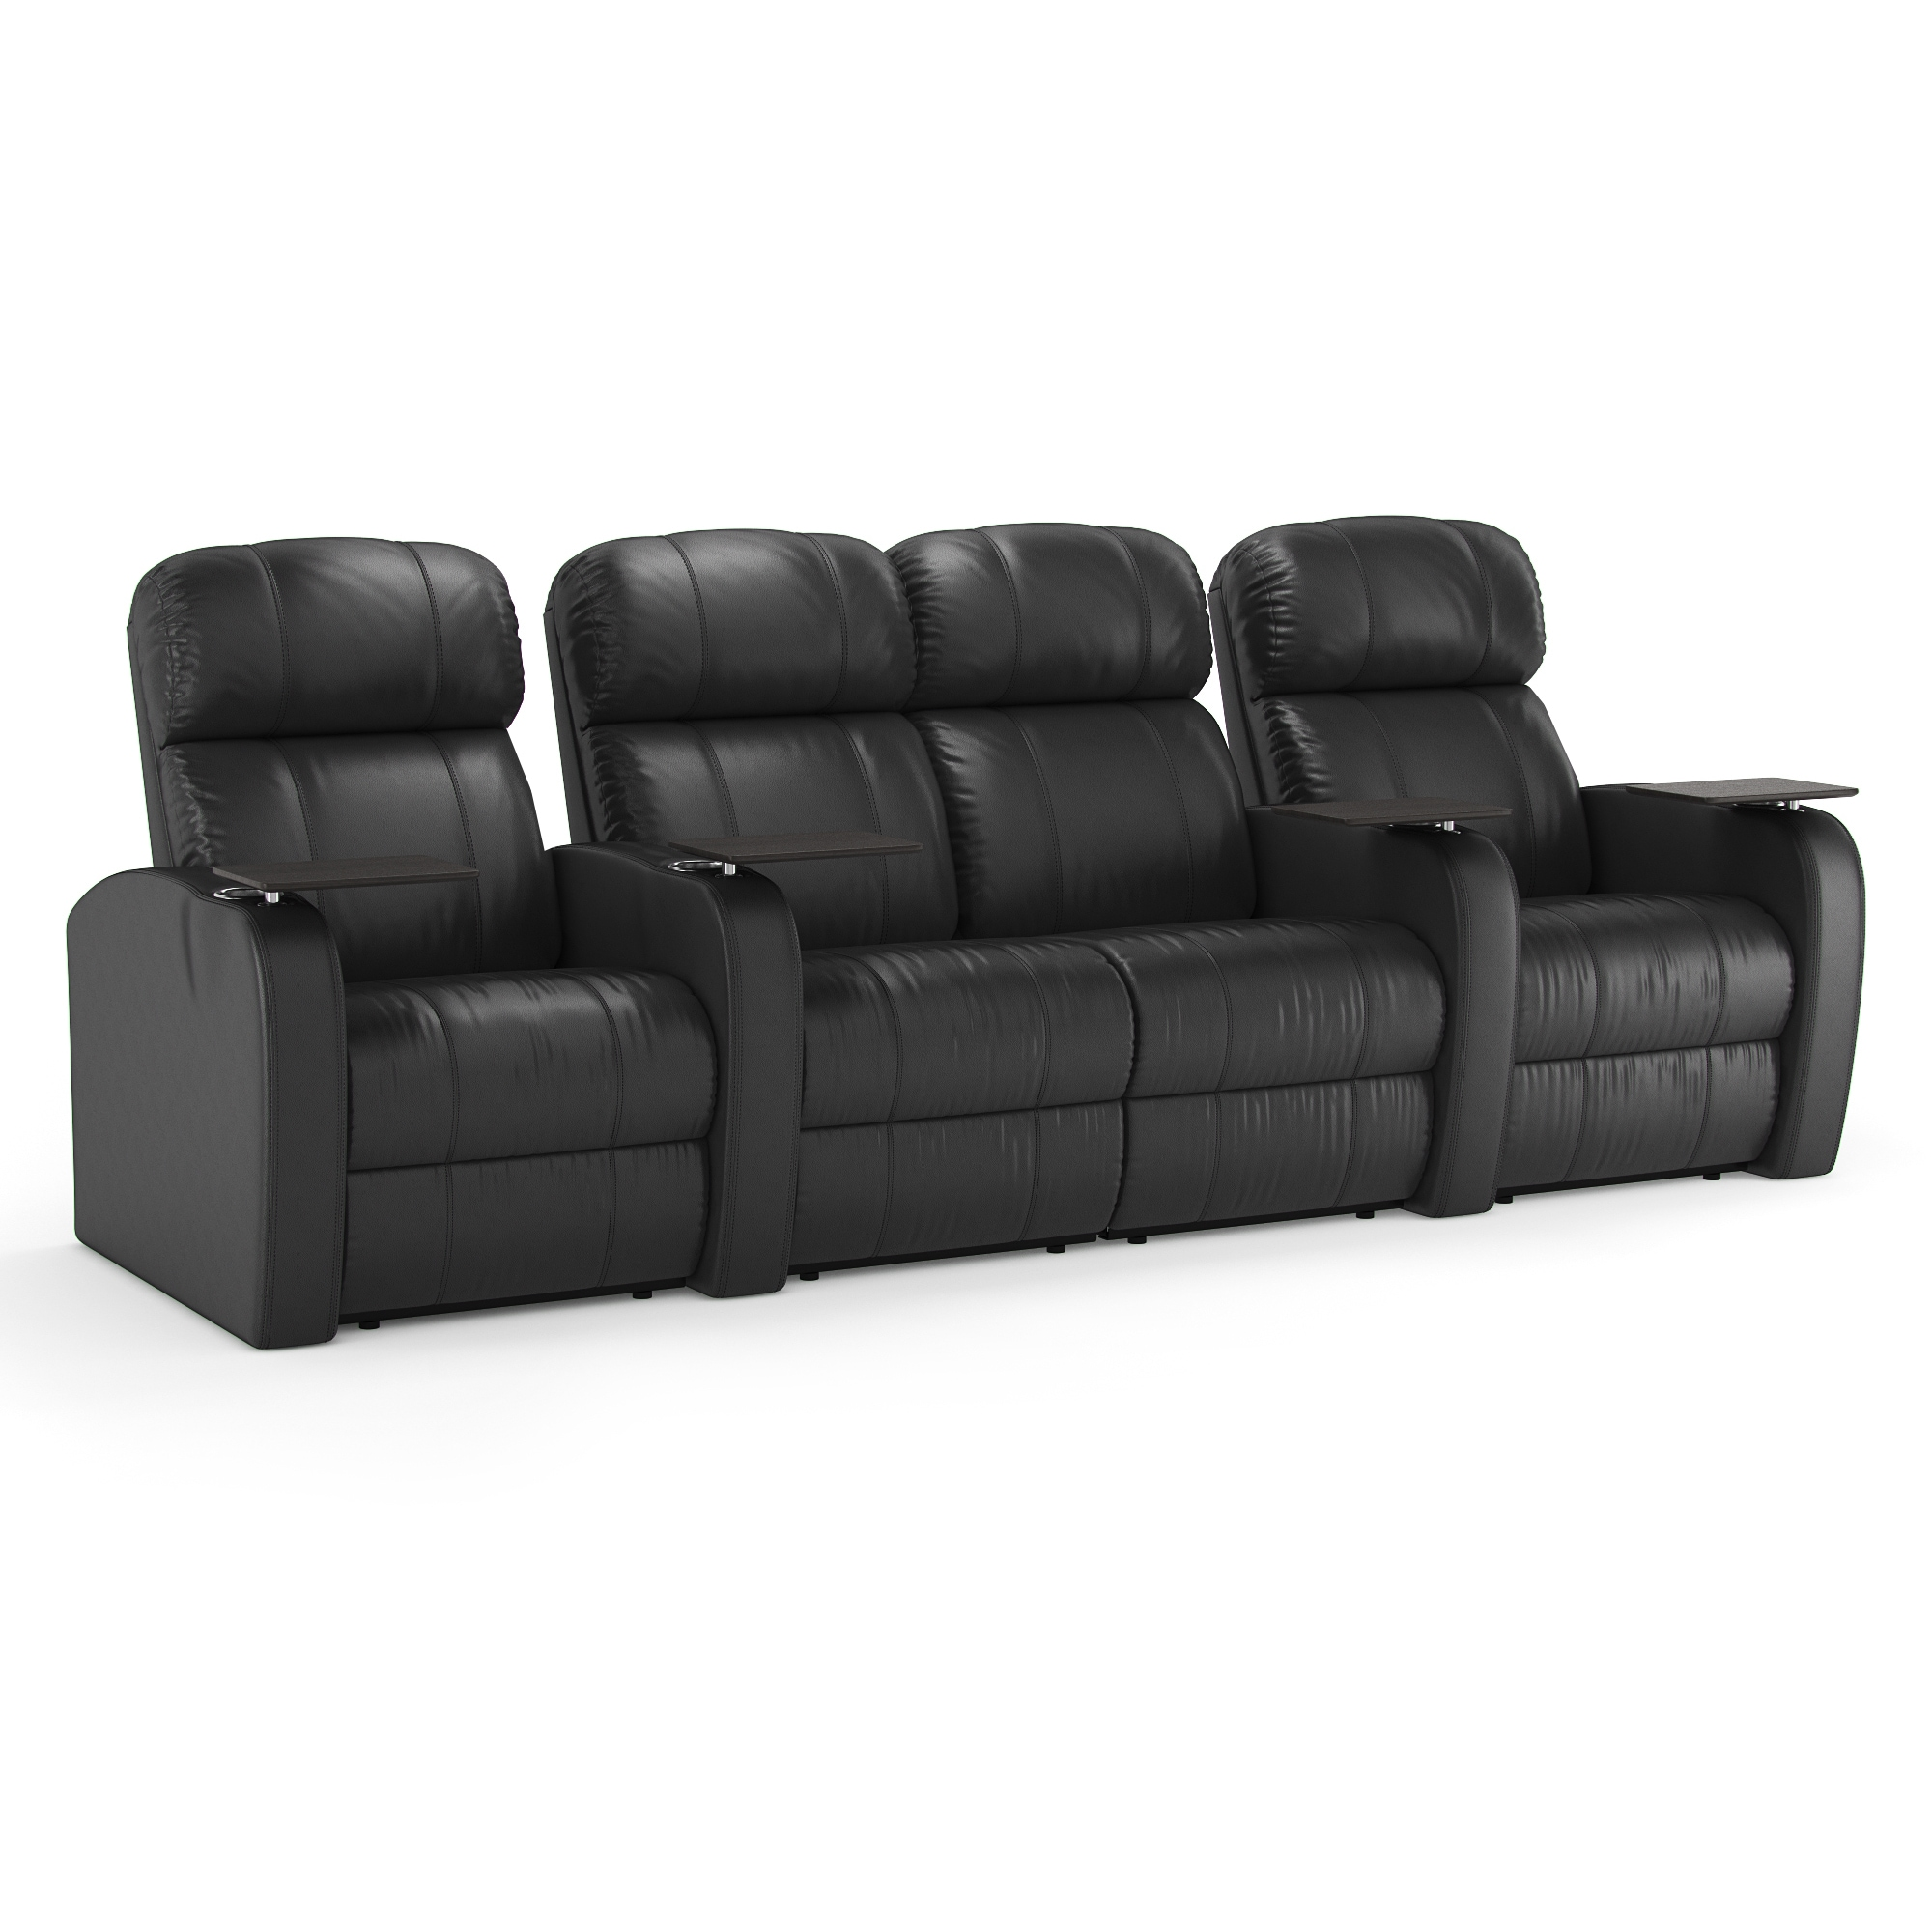 Octane Diesel Xs950 Black Leather Home Theater Seating Row Of 4 Overstock 10655677